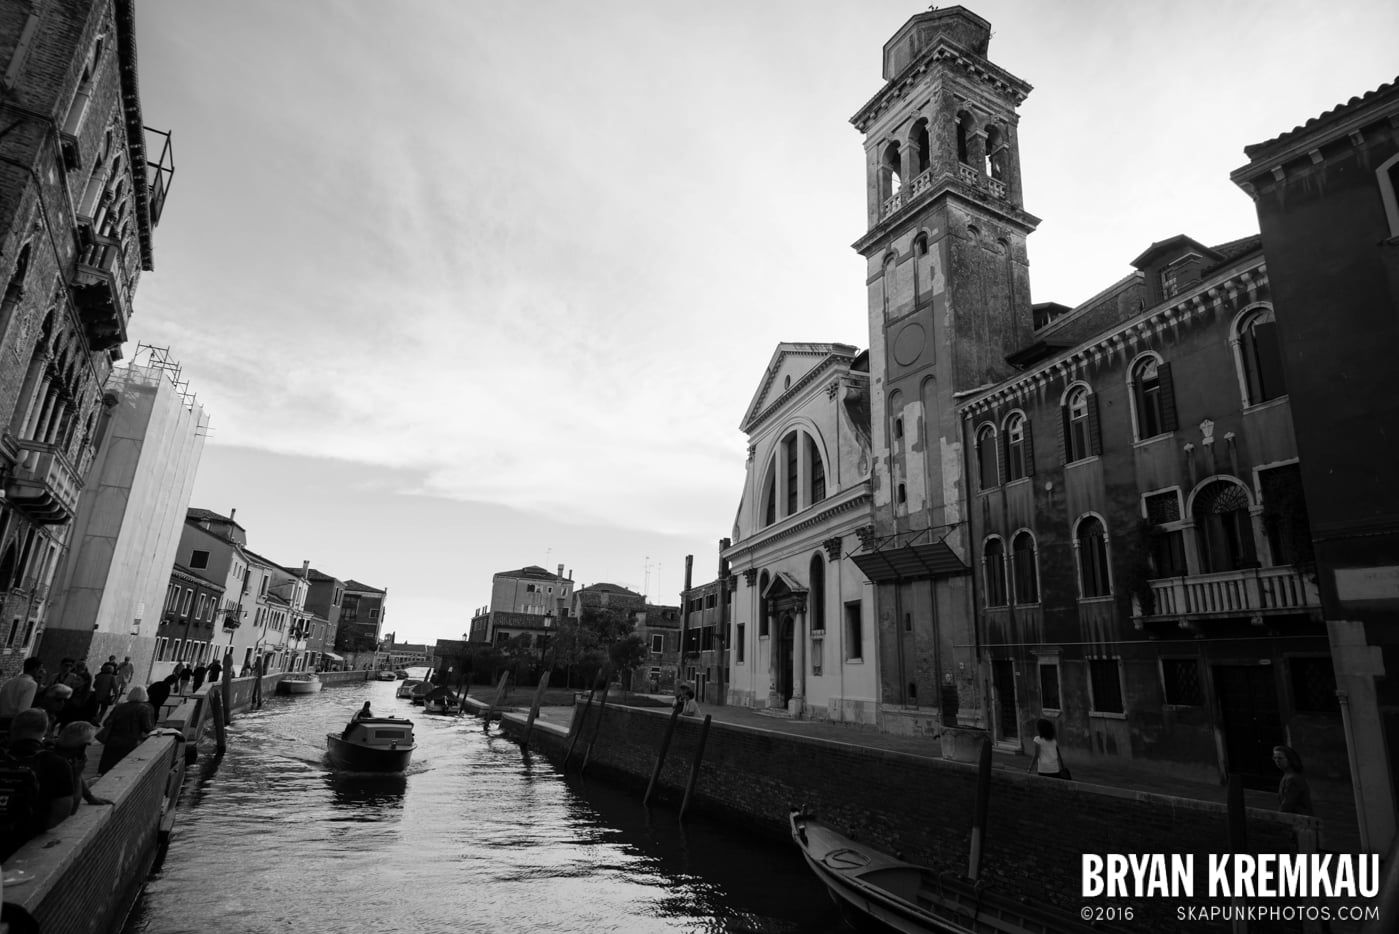 Italy Vacation - Day 4: Venice - 9.12.13 (22)